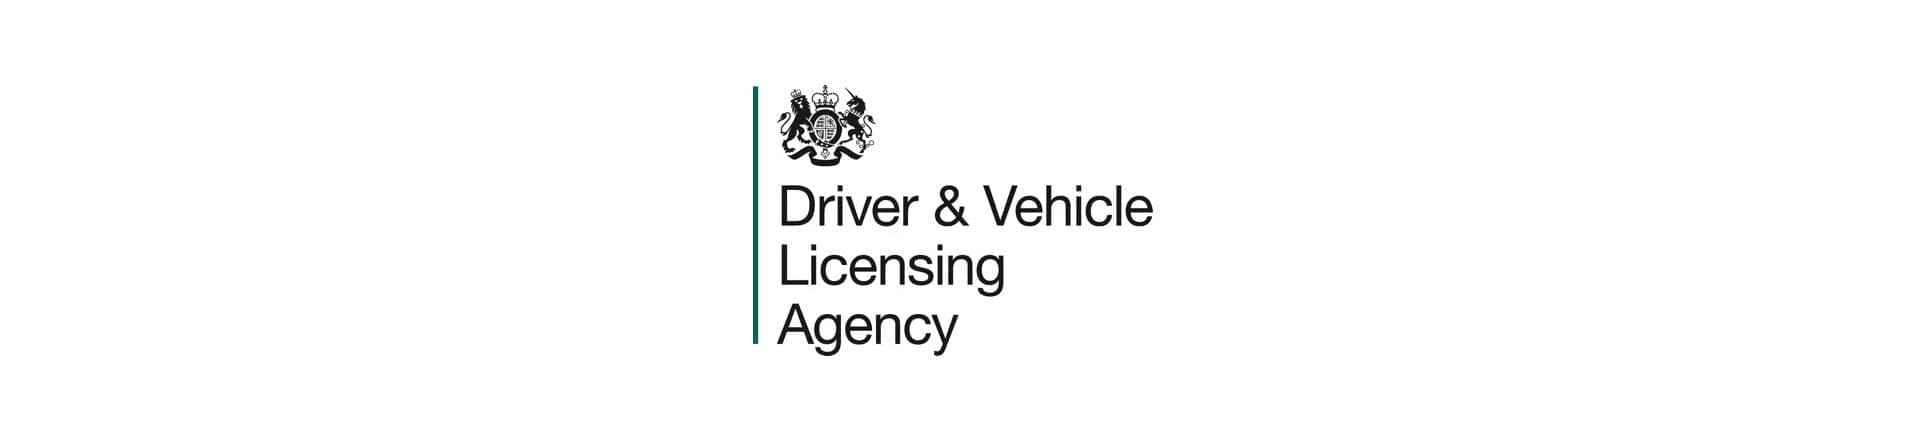 Driver & Vehicle Licensing Agency Logo